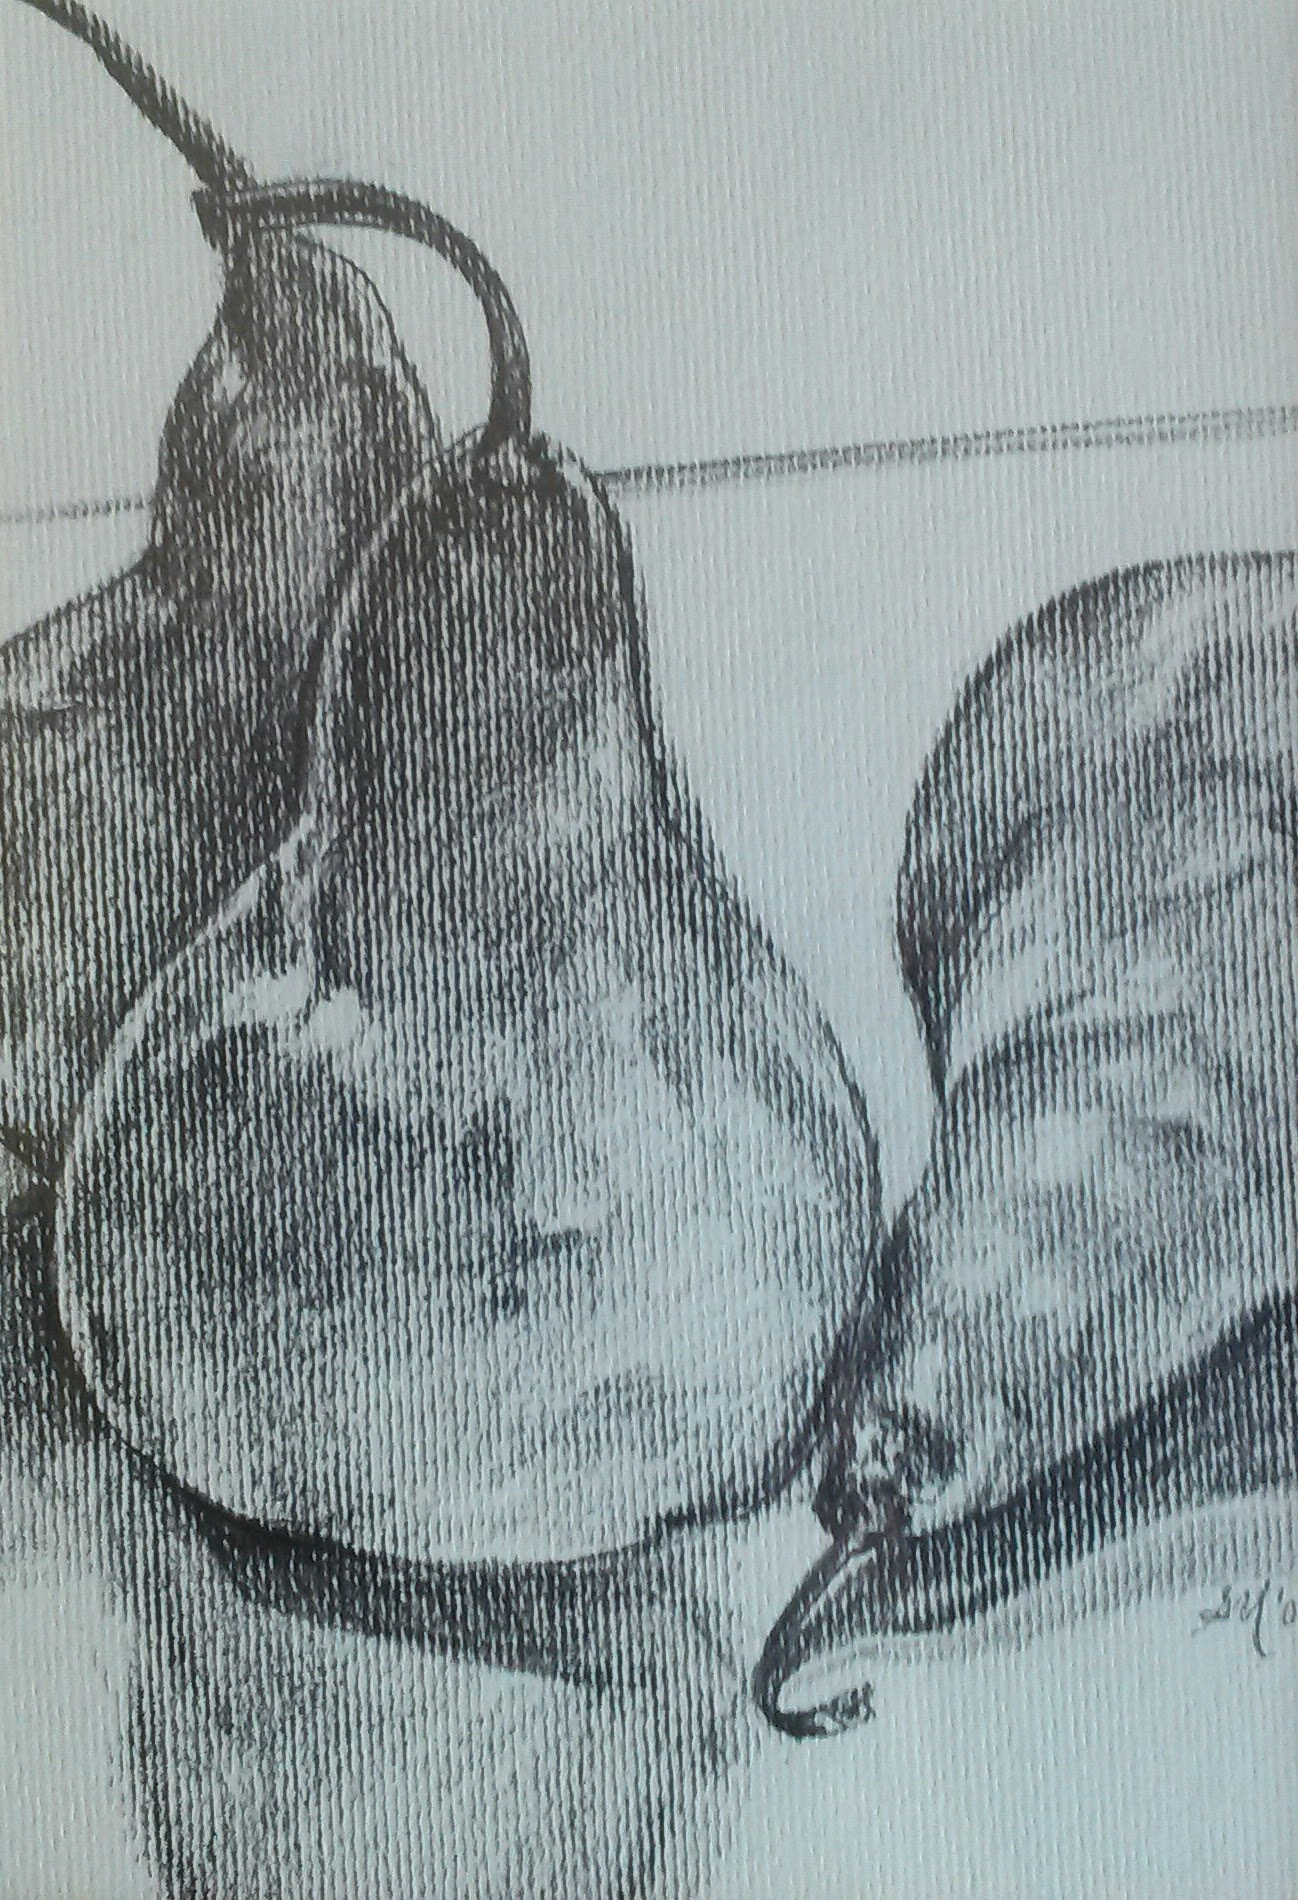 Textured Gray Pears